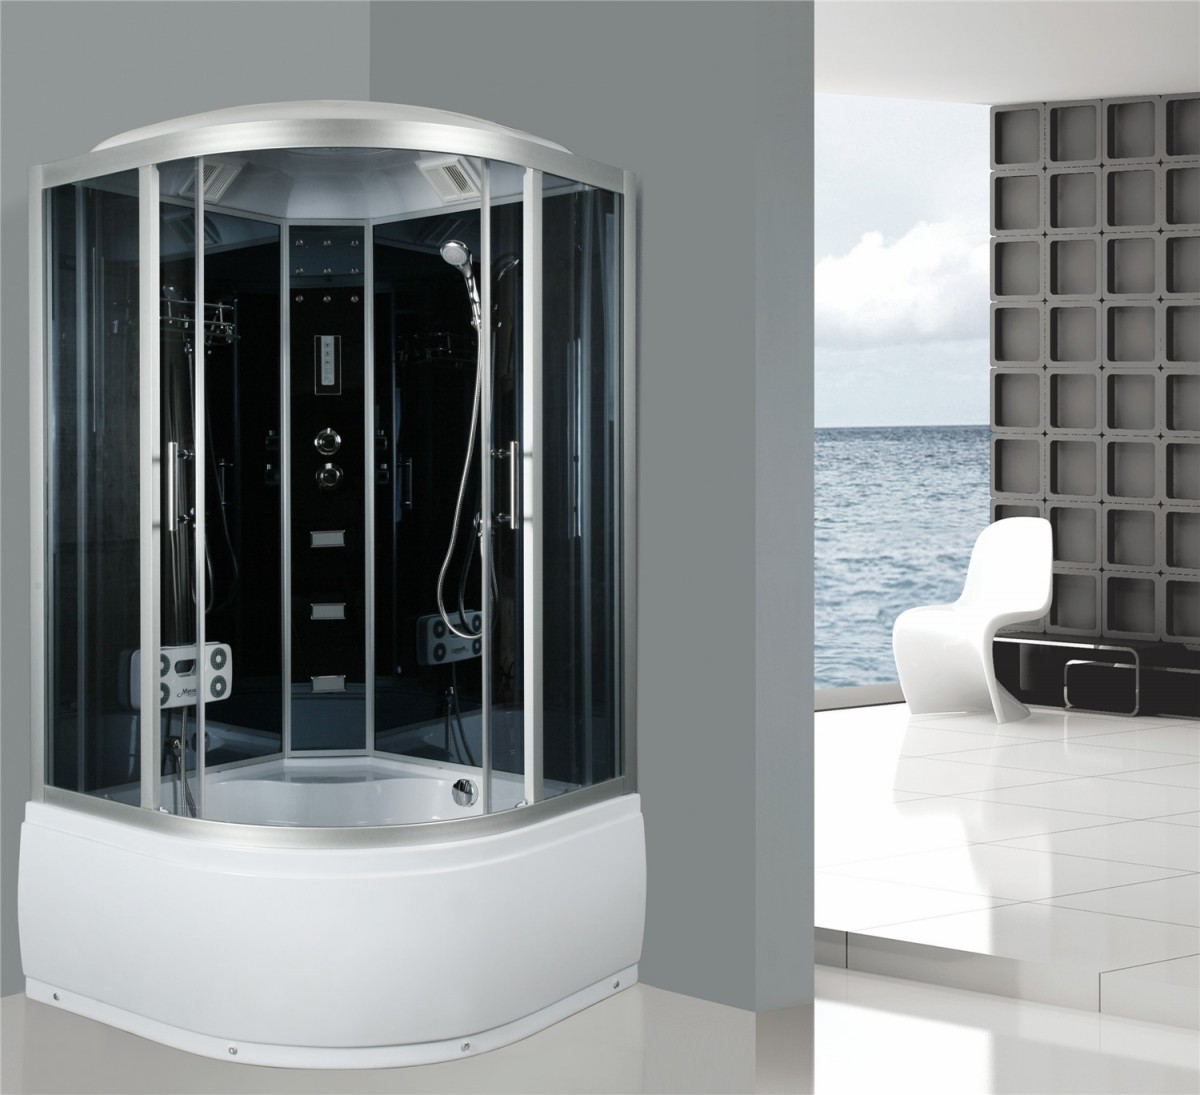 cabine de douche compl te sanifun olympia 110 x 110 commander avec la garantie du meilleur prix. Black Bedroom Furniture Sets. Home Design Ideas